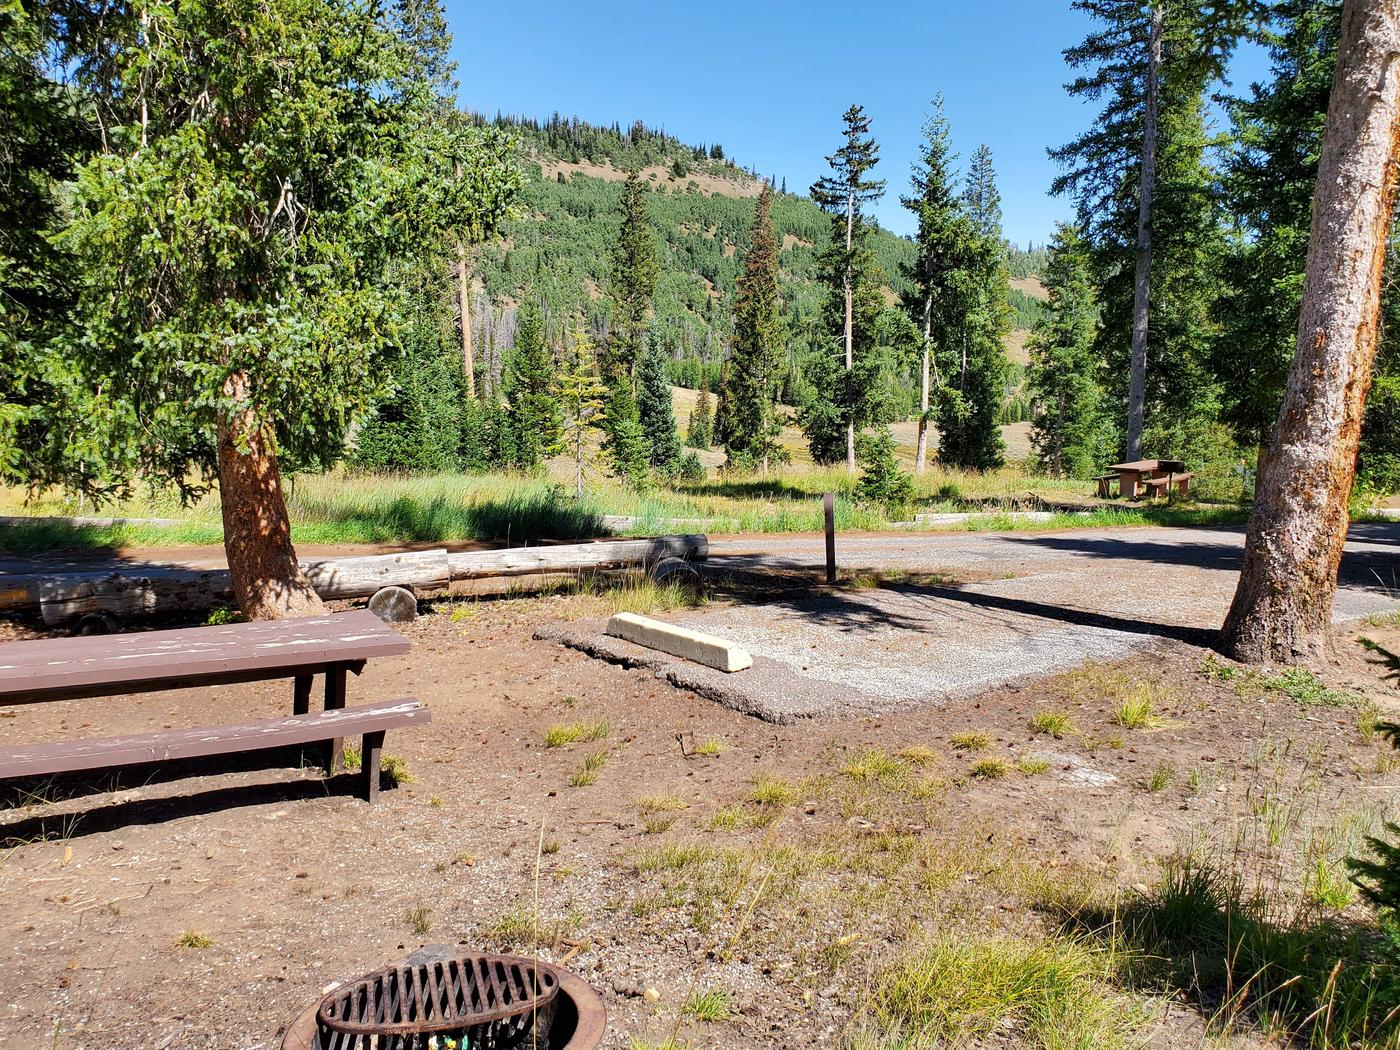 Flat Canyon Campground Site #10